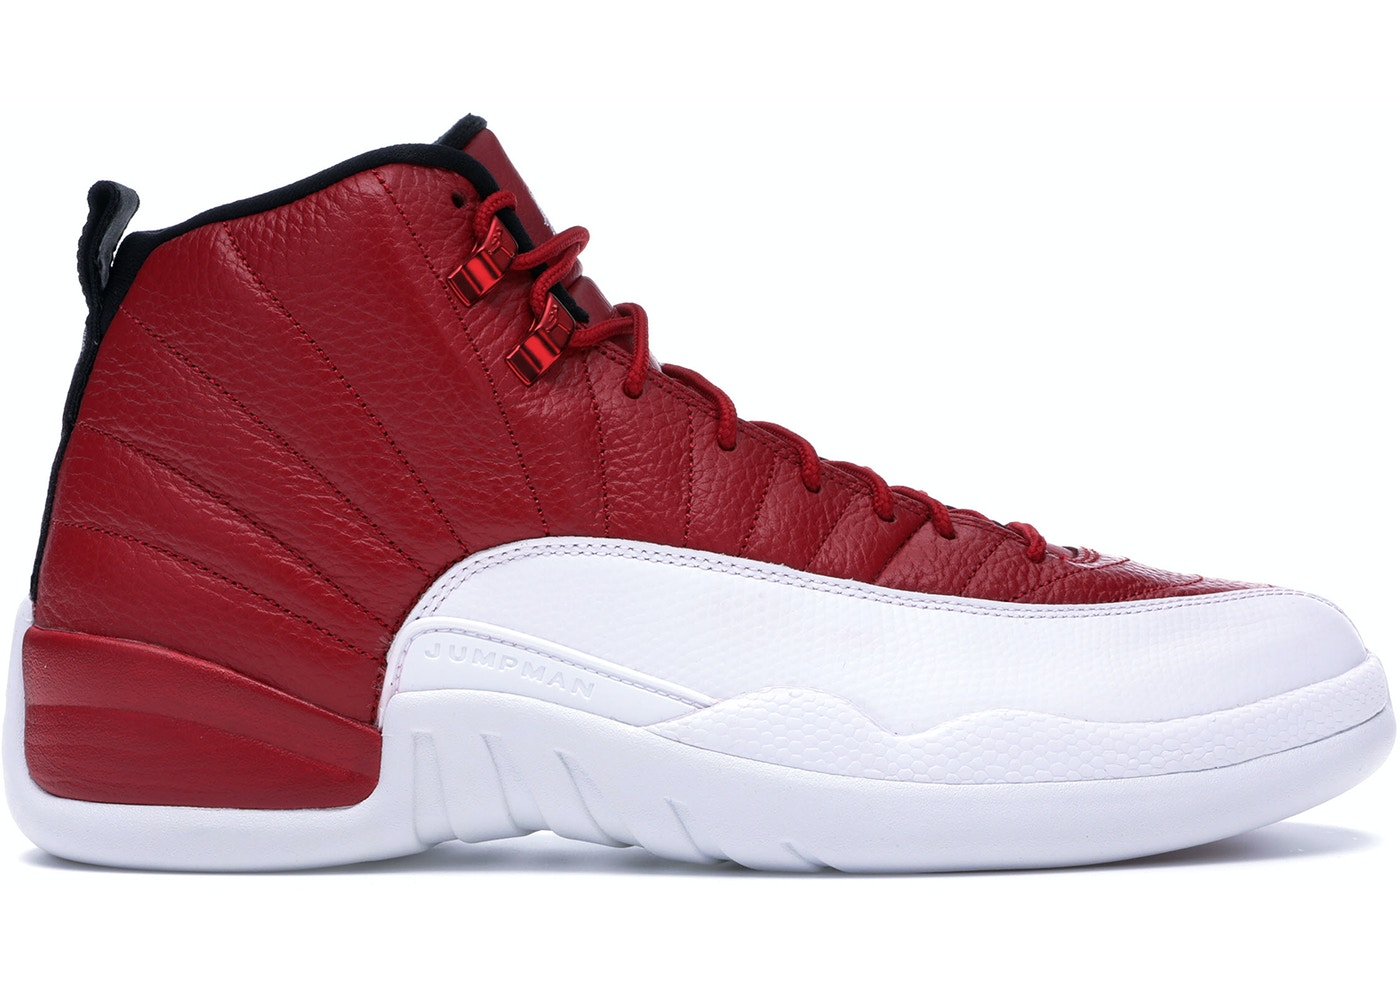 buy popular b80c3 0ac6c Buy Air Jordan 12 Shoes & Deadstock Sneakers